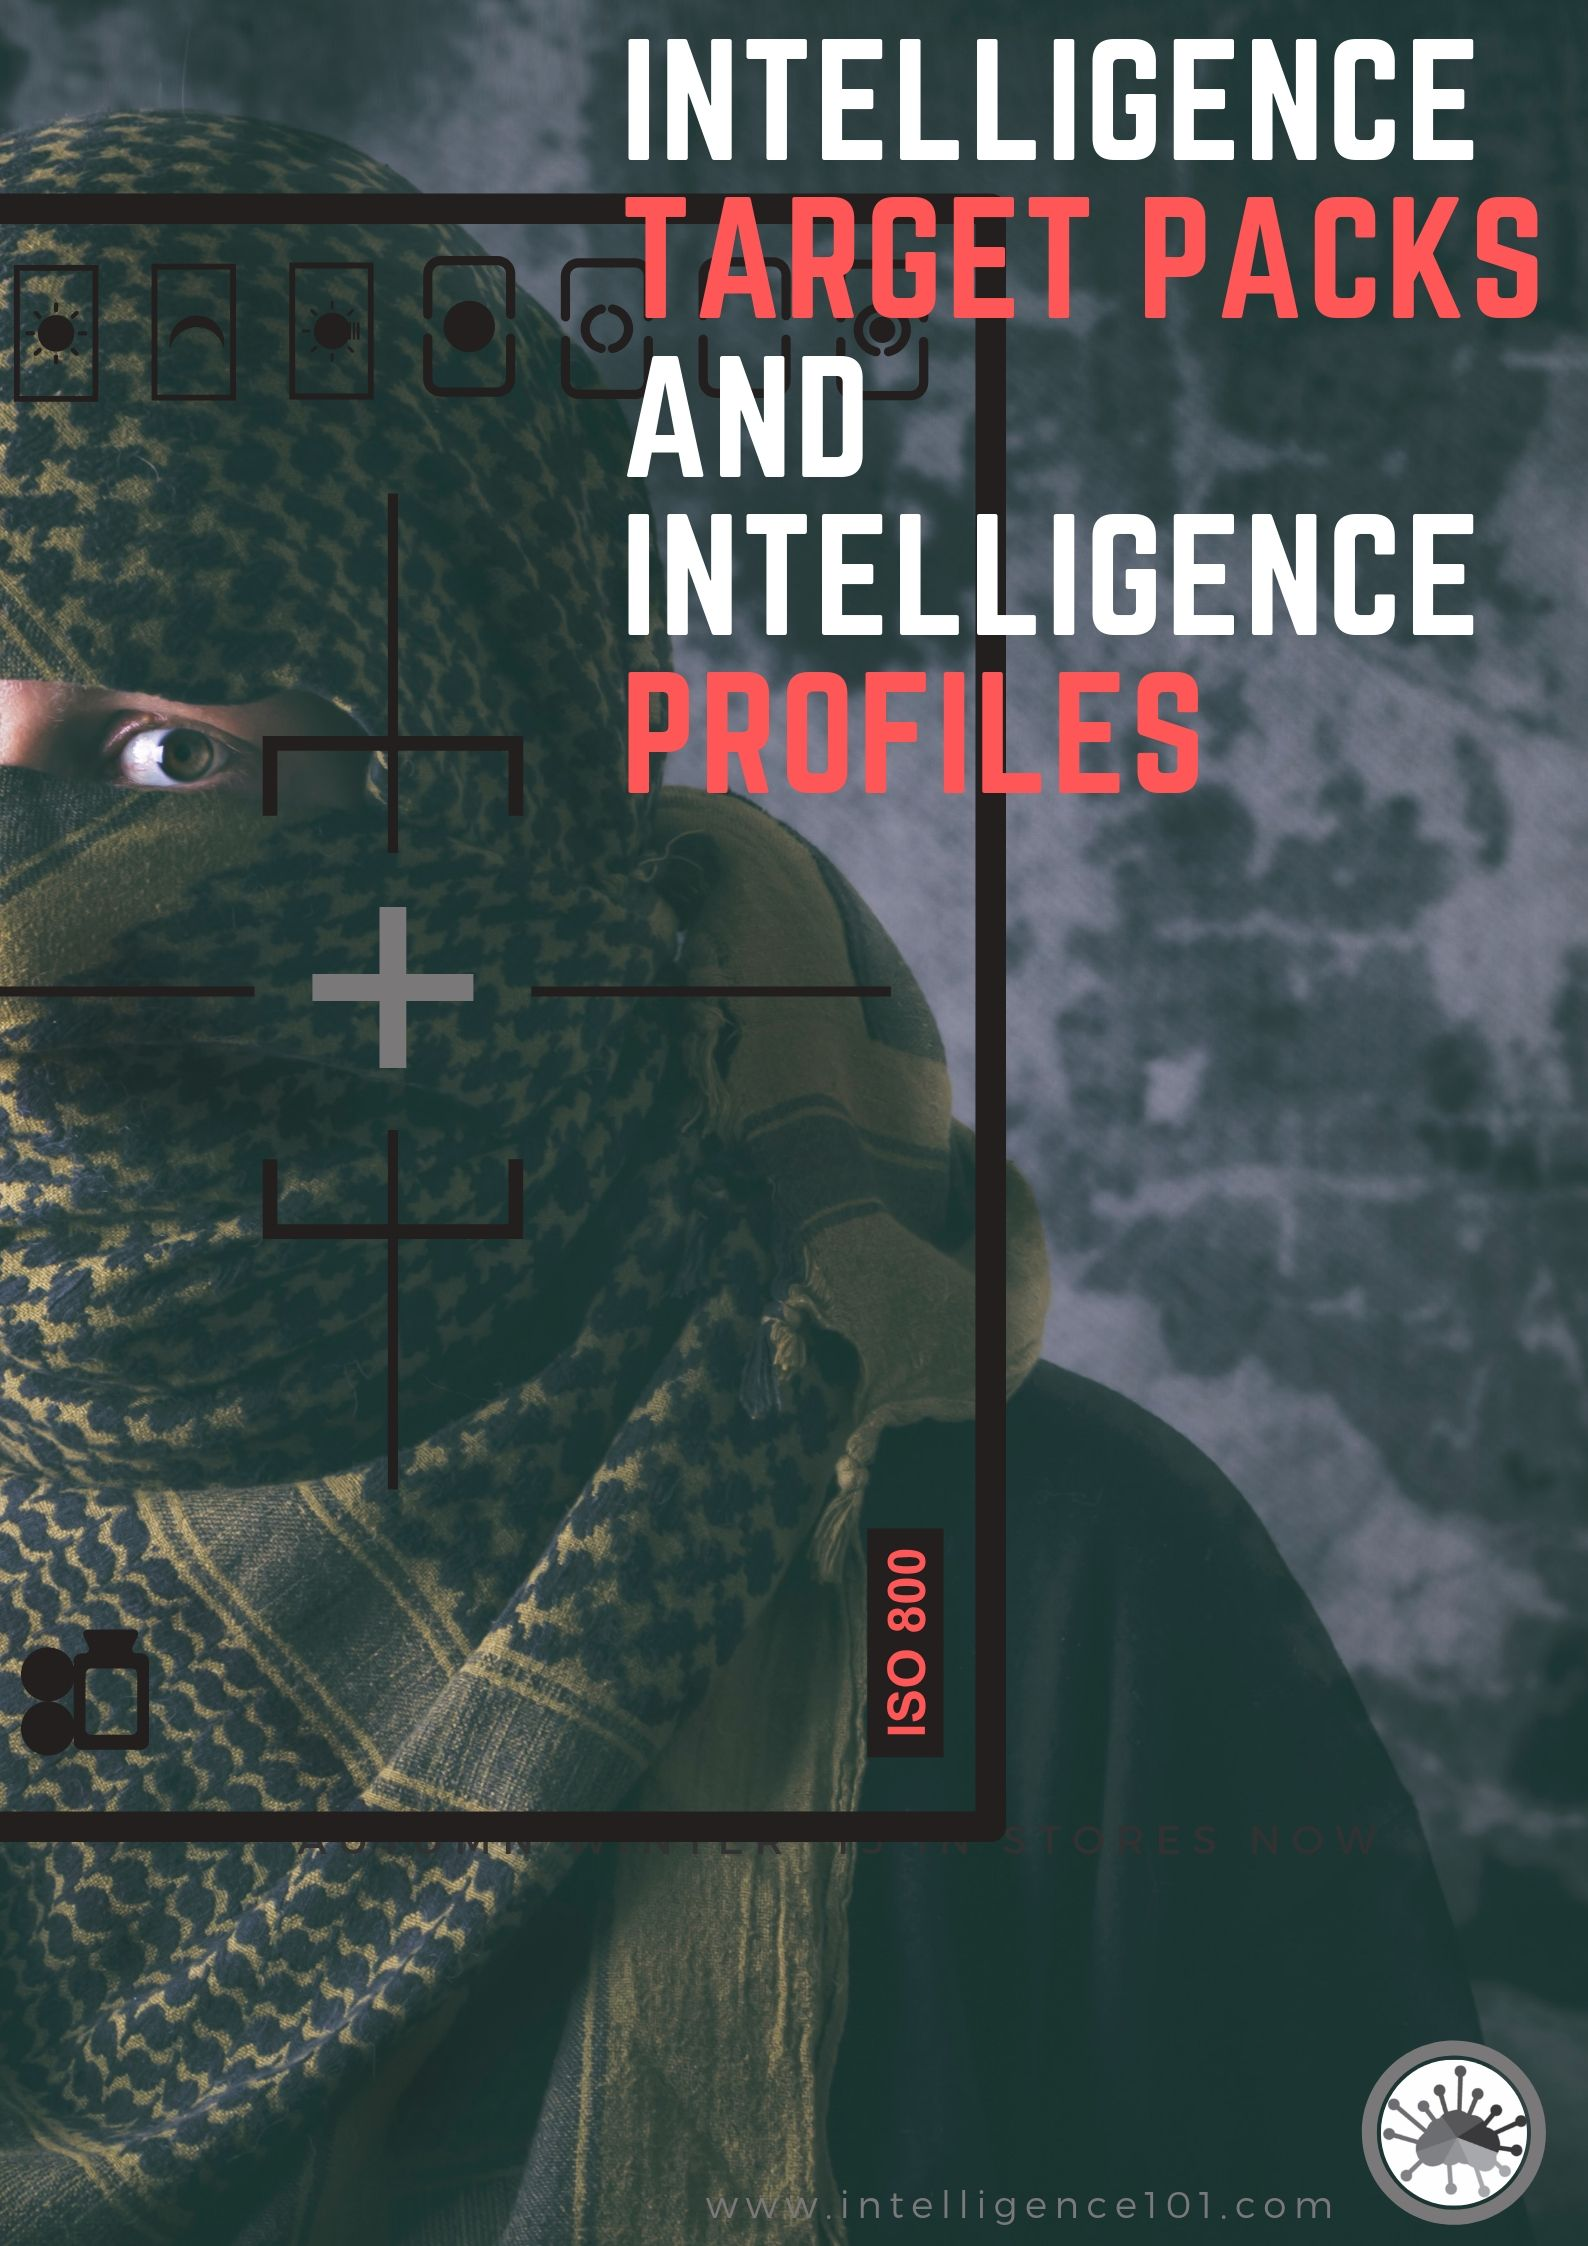 Intelligence Target Packs and Intelligence Profiles (Plus Templates You Can Download)